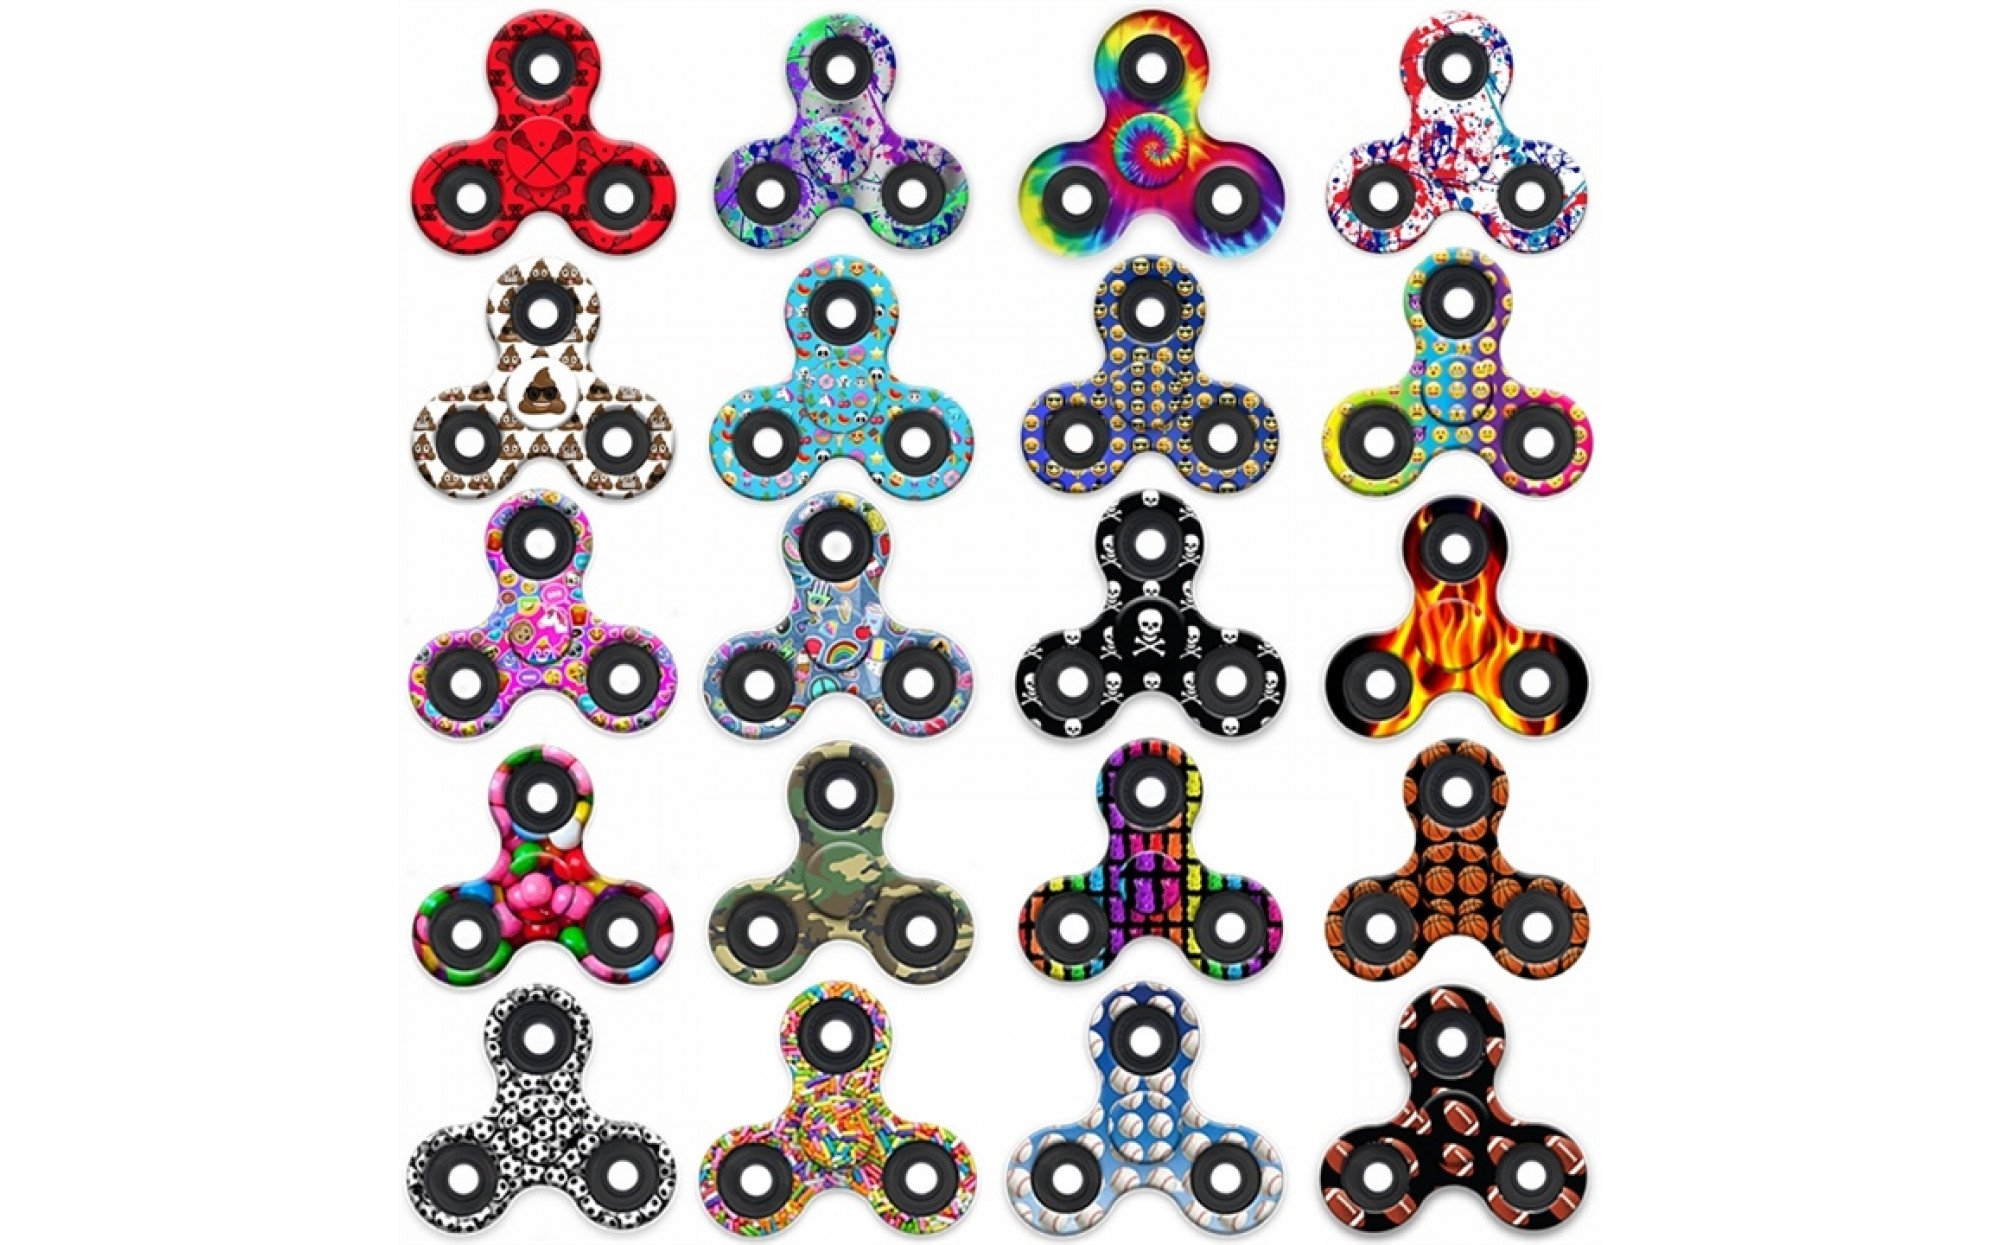 Patterned Fidget Spinner Interesting Decorating Ideas